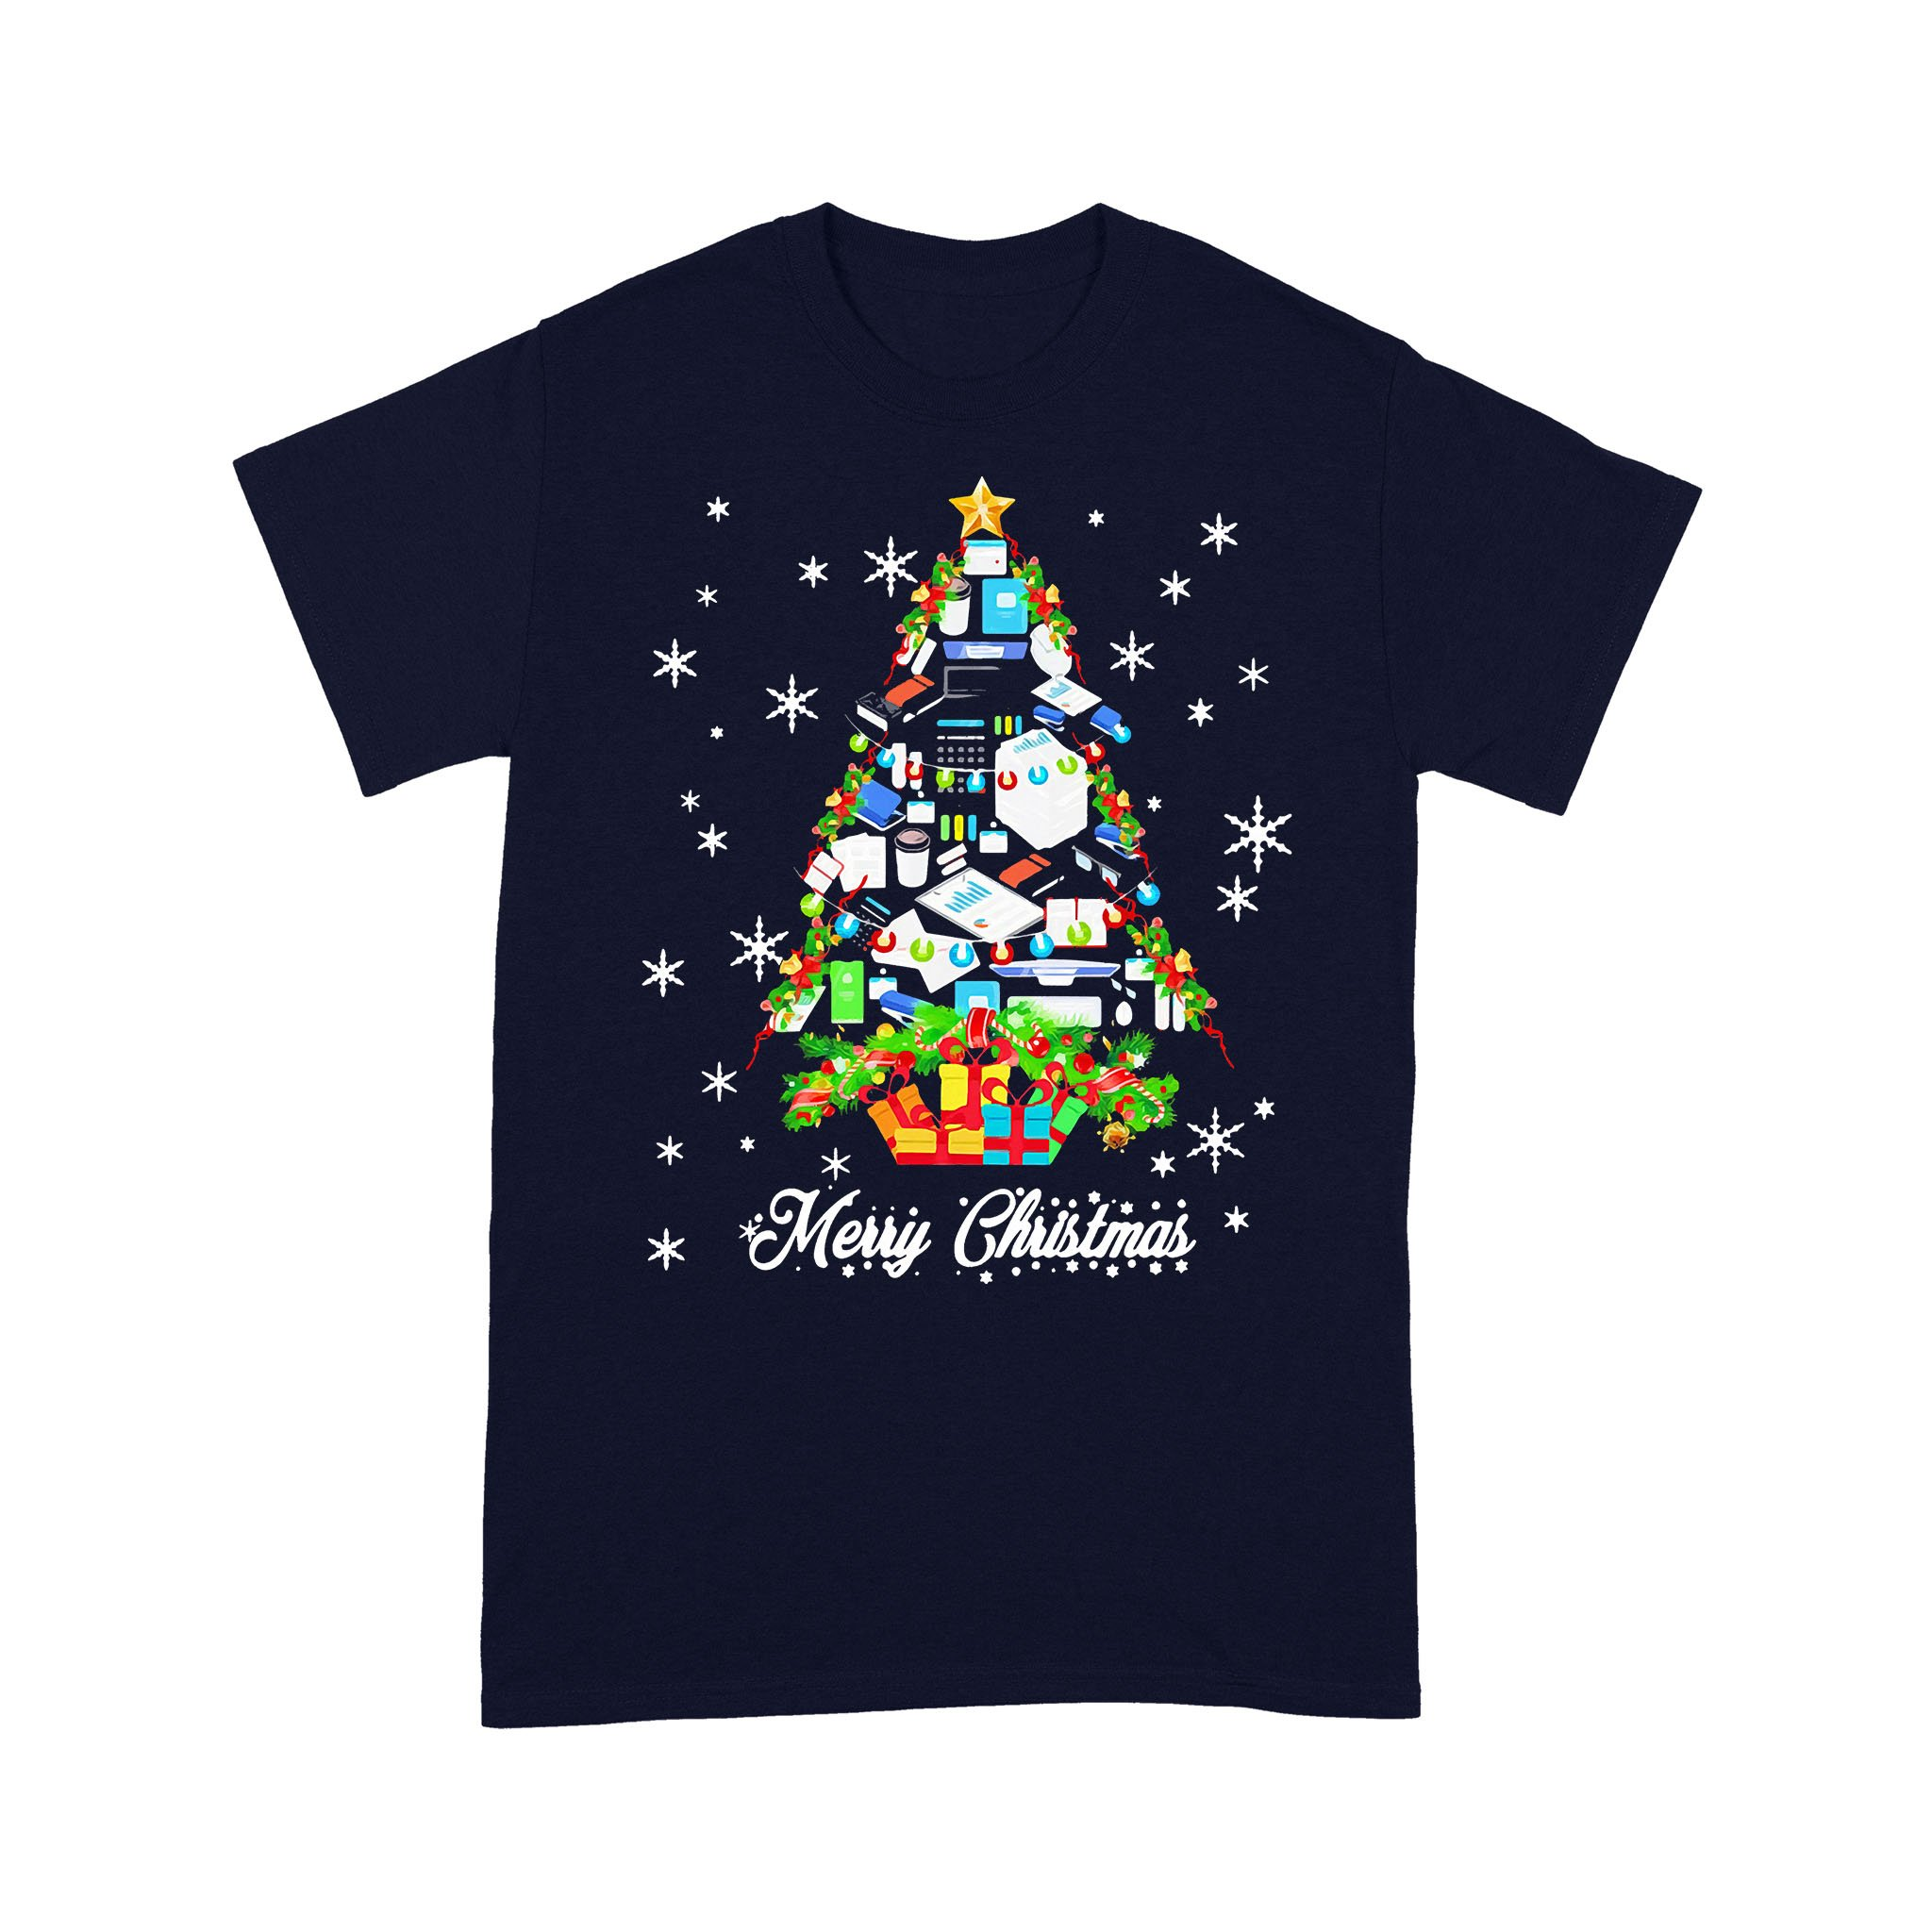 Accountant Merry Christmas T-shirt